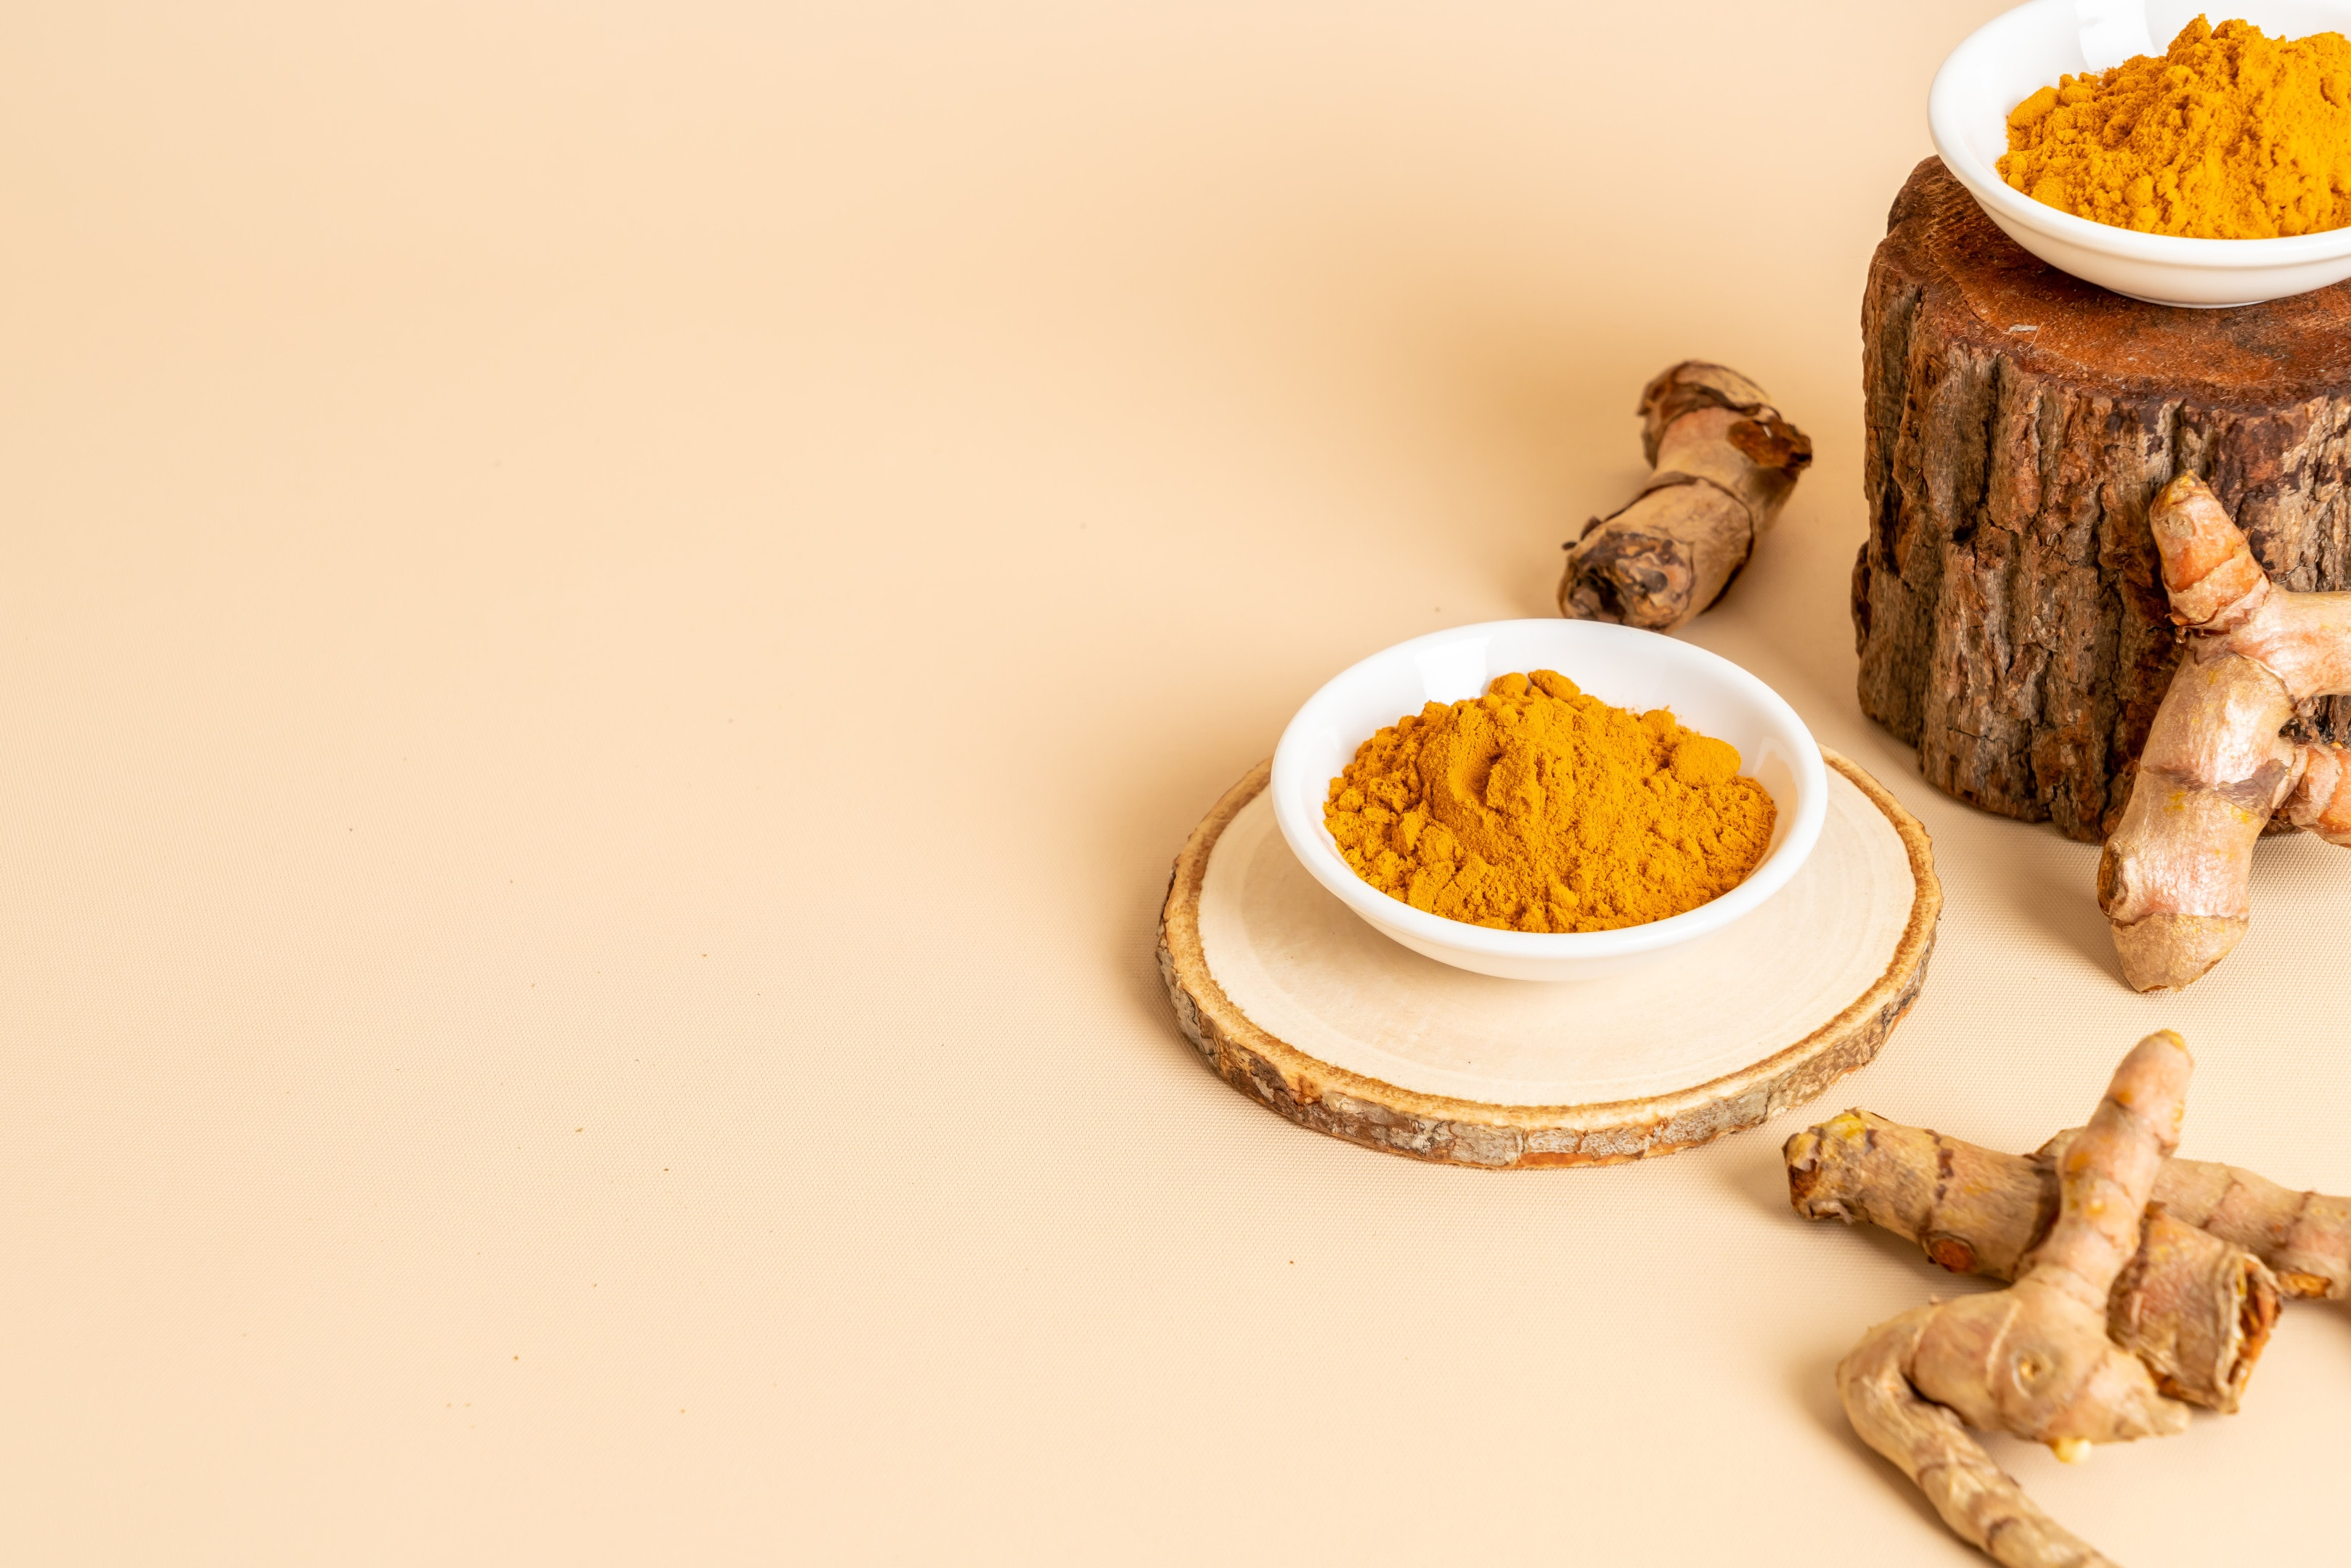 Turmeric powder and fresh turmeric on pastel background